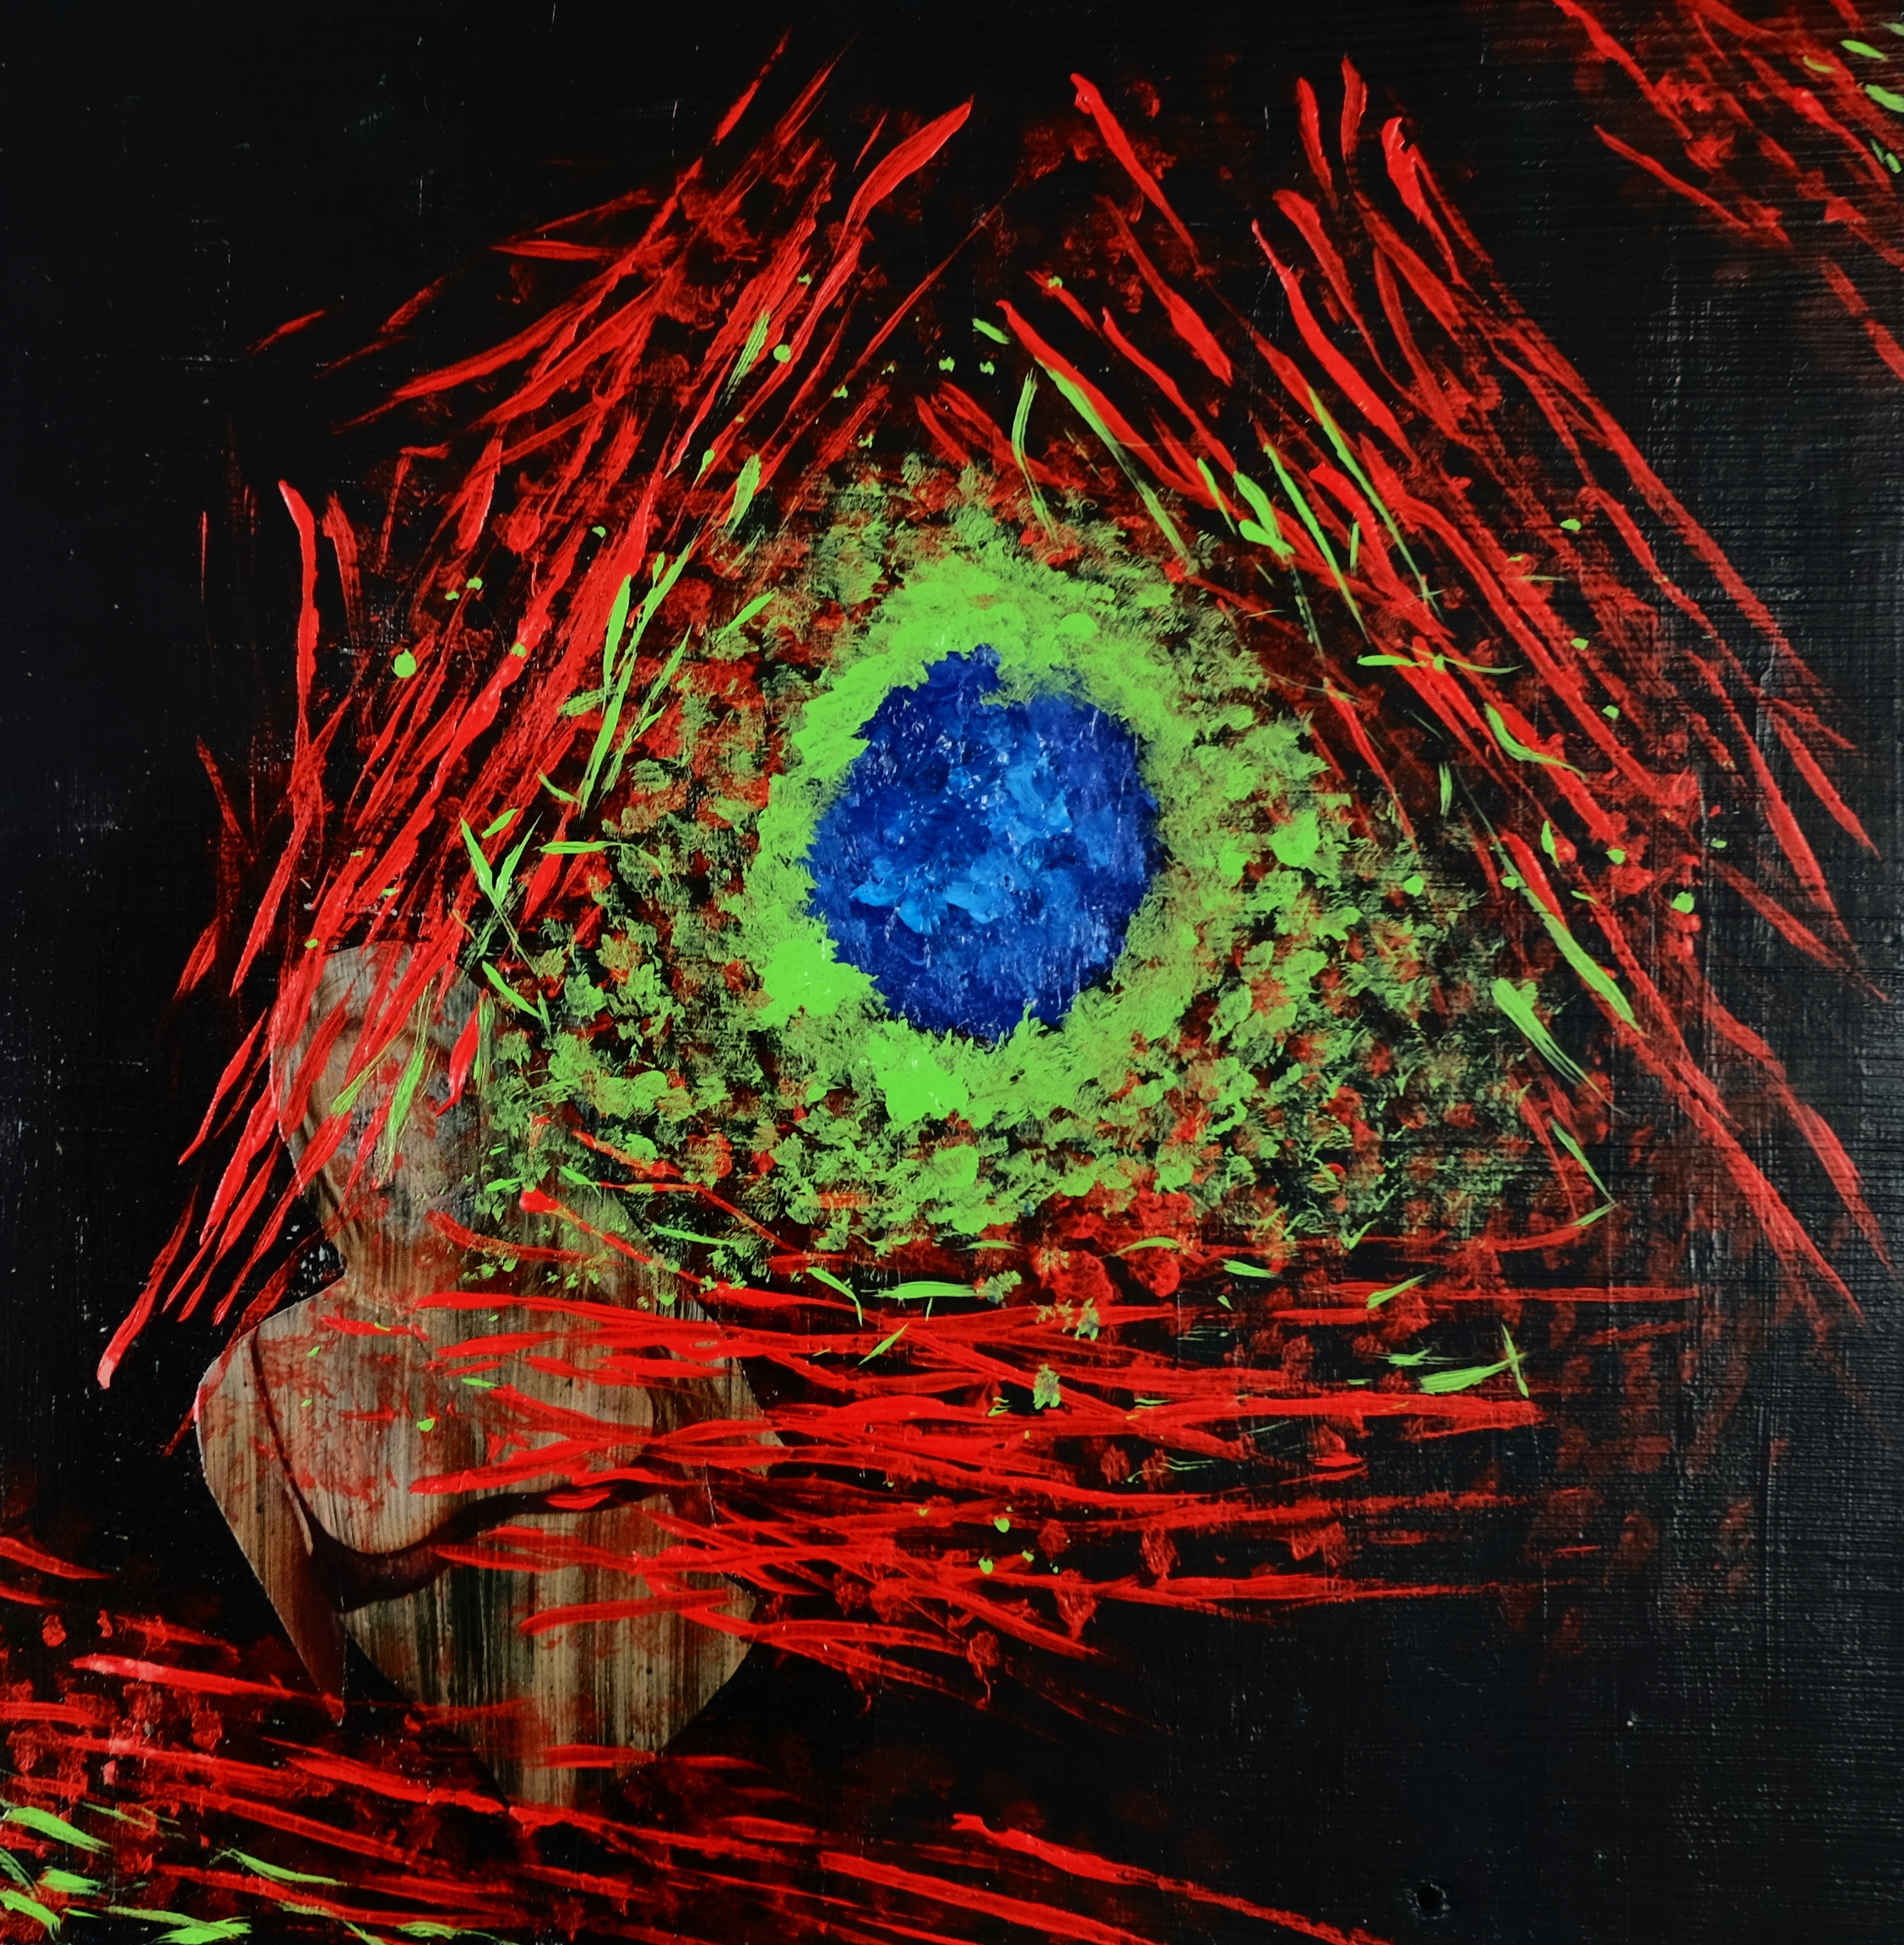 Study in Cell Exploration #4